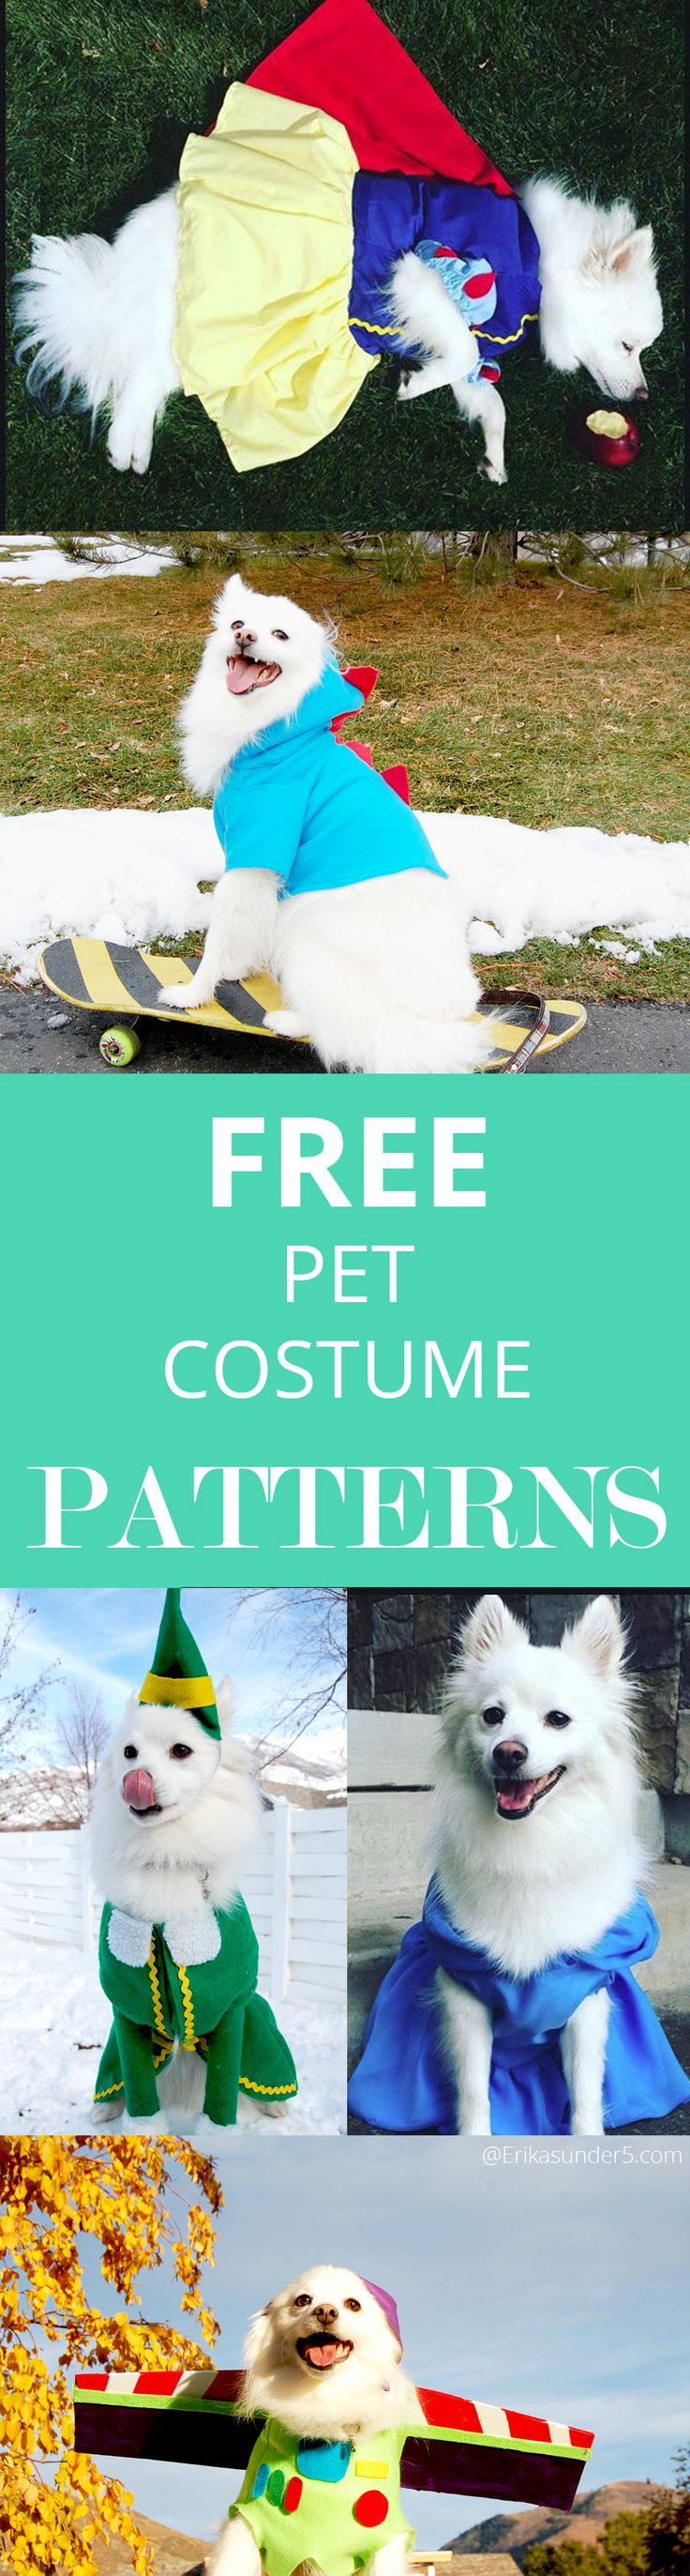 15 best dogs images on pinterest dog stuff dog supplies and doggies whats more irresistible than a dog in a costume nothing free pet costume patterns dog elf costumedog dinosaur costumepet costumesdiy solutioingenieria Image collections